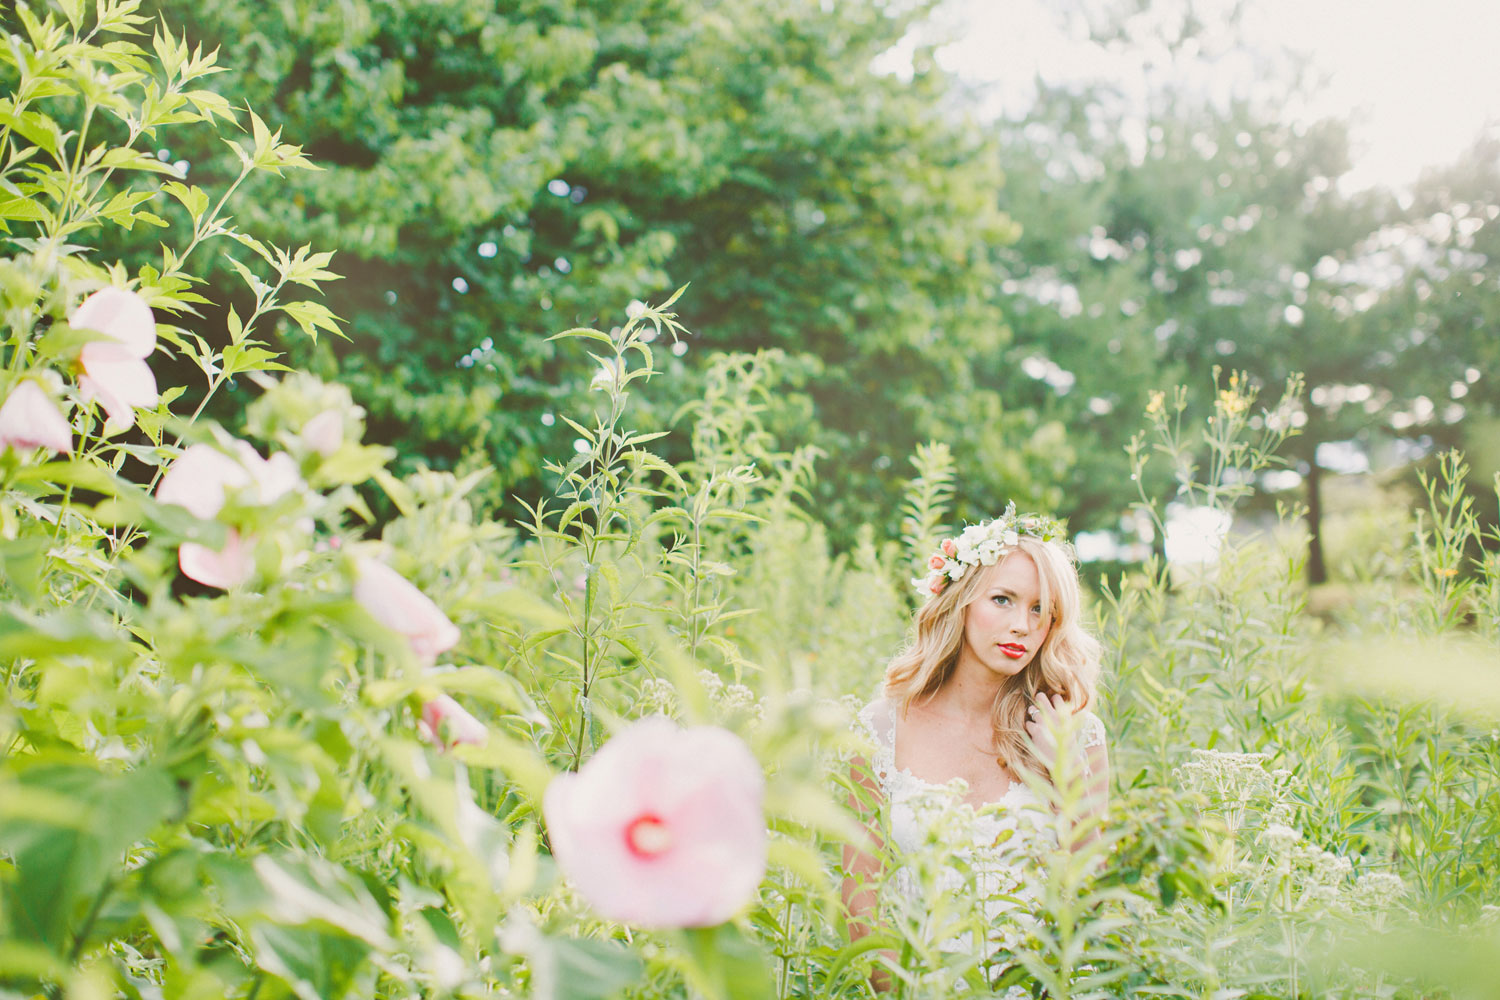 jaimie_bridalsubmit_amycampbellphotography_0003.jpg